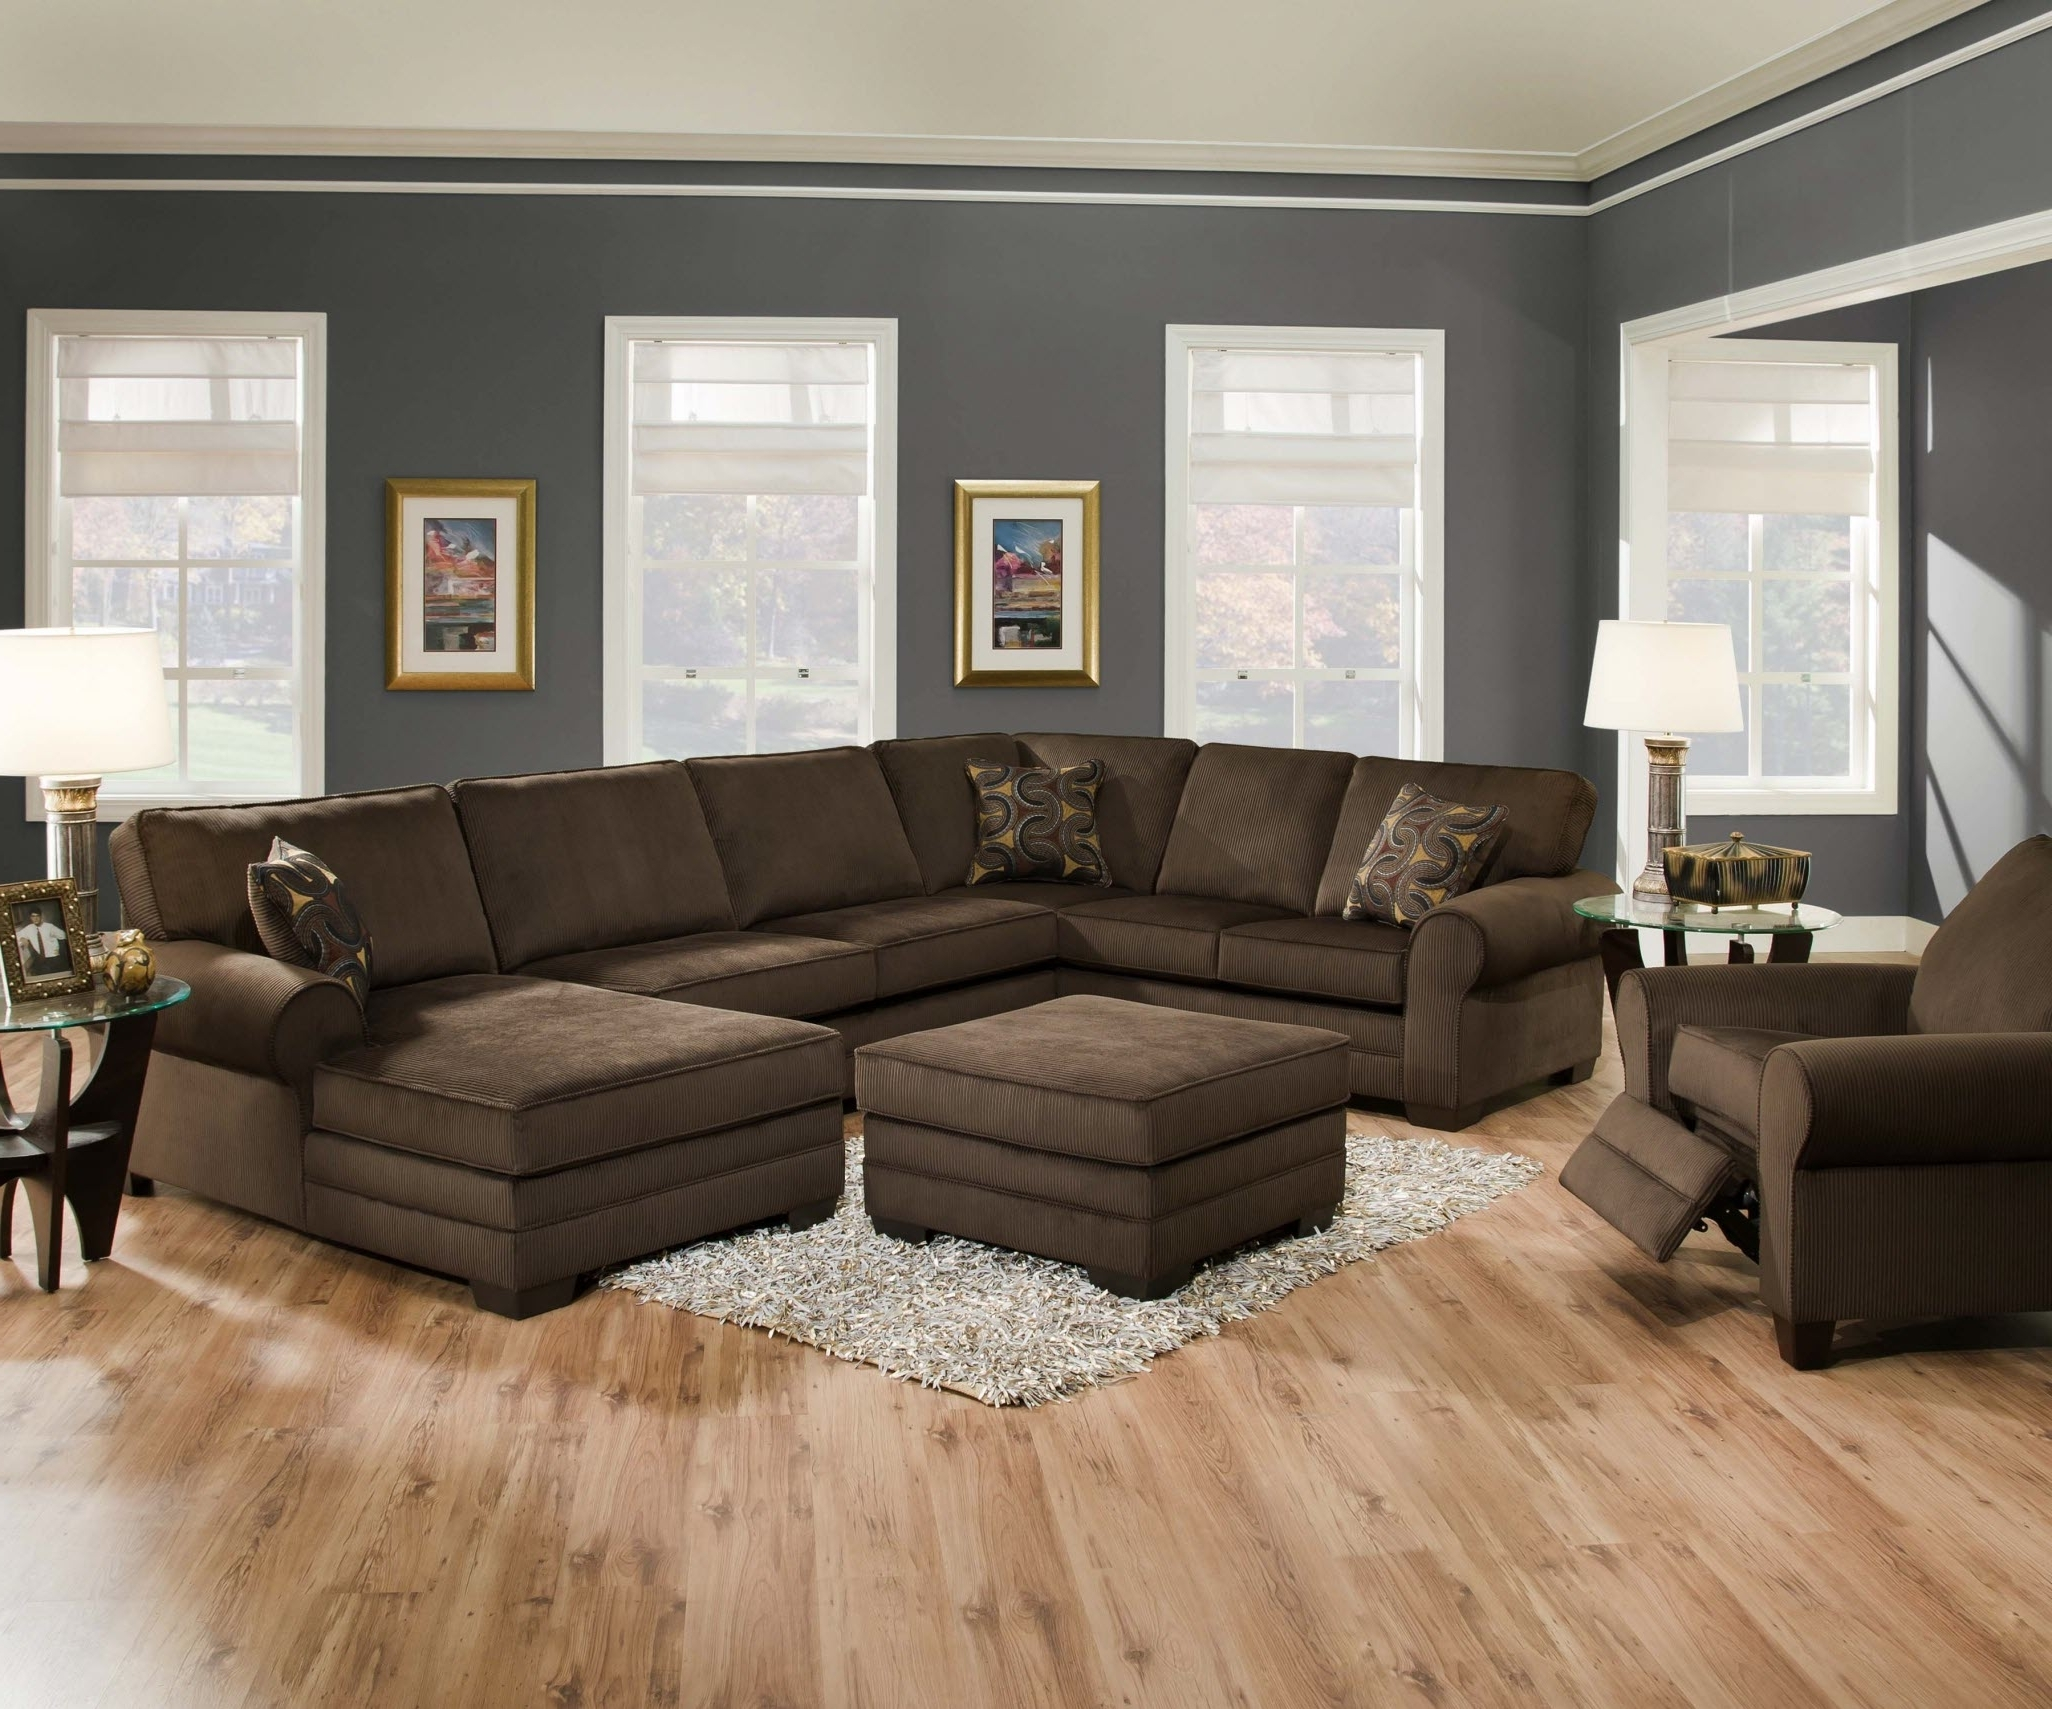 Most Up To Date Simmons Sectional Sofas Inside Designssimmons – Simmons Deluxe Beluga Sectional (View 5 of 15)